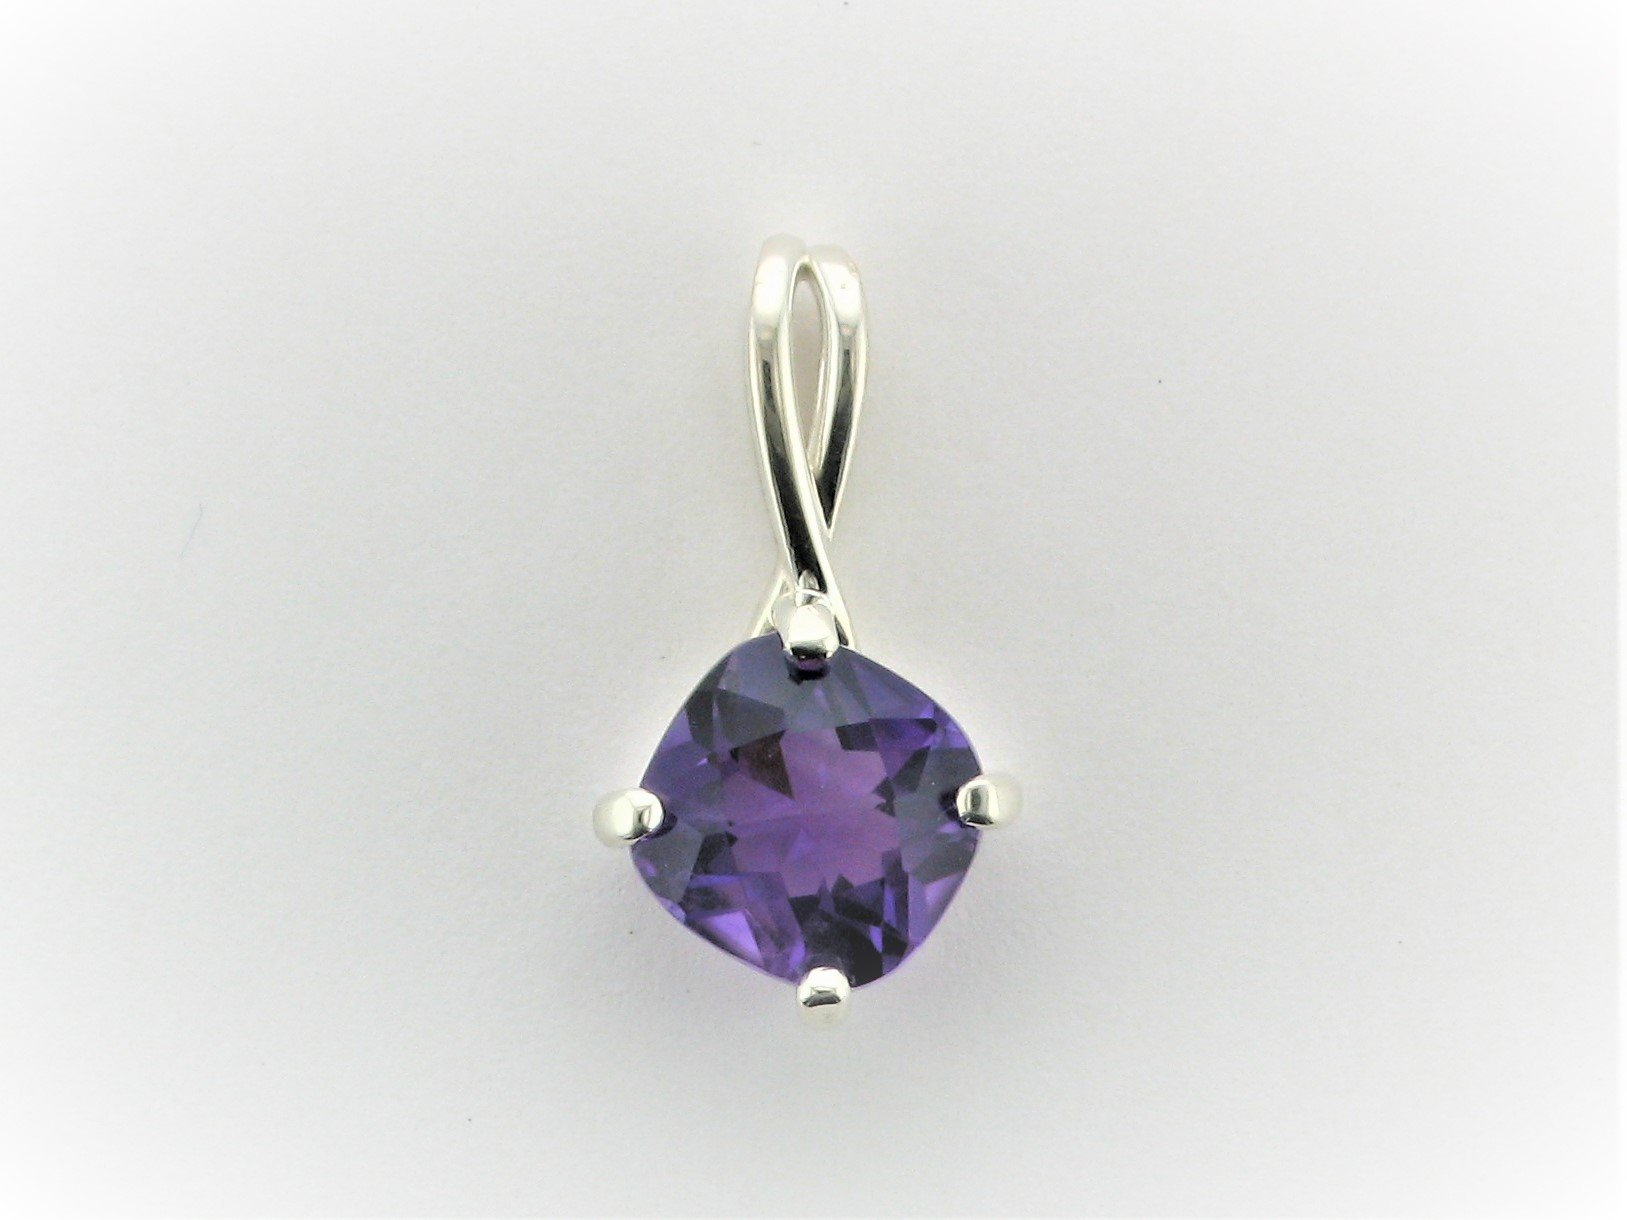 3.65 Carat Checkerboard Amethyst Pendant Set in Sterling Silver